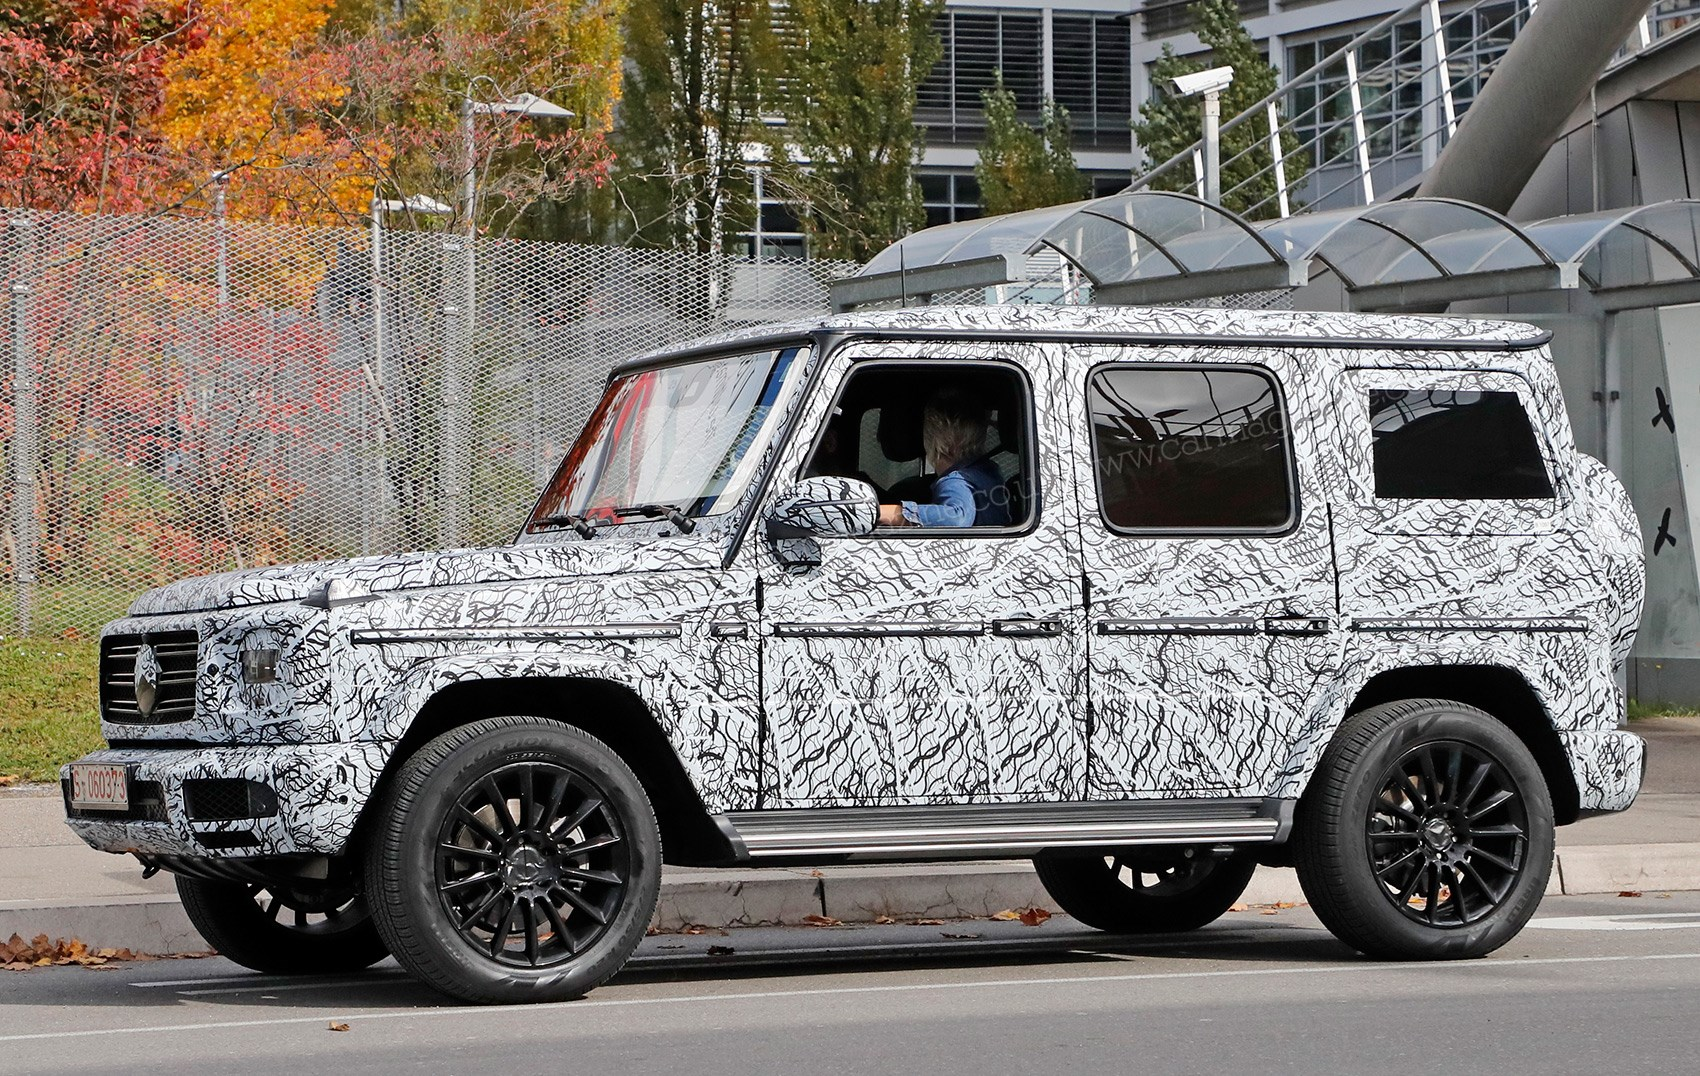 They Re Not Mucking About With The Blocky Styling Of Mercedes G Cl